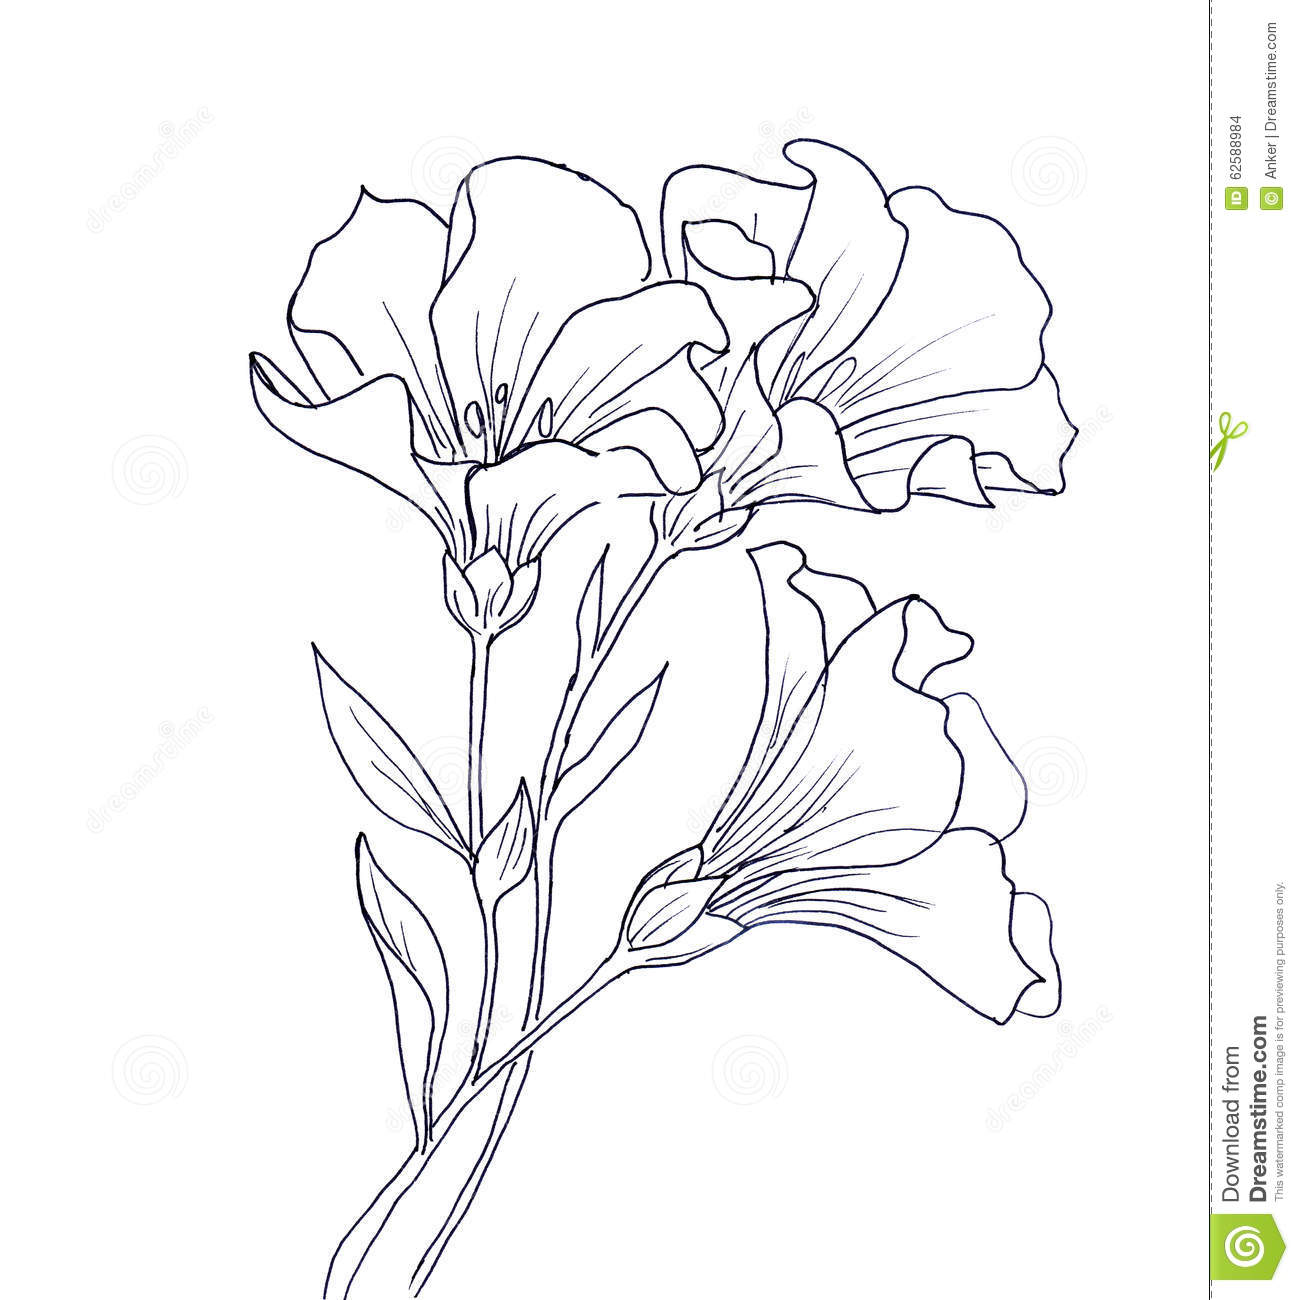 Contour Line Drawing Butterfly : Line ink drawing of flower stock illustration